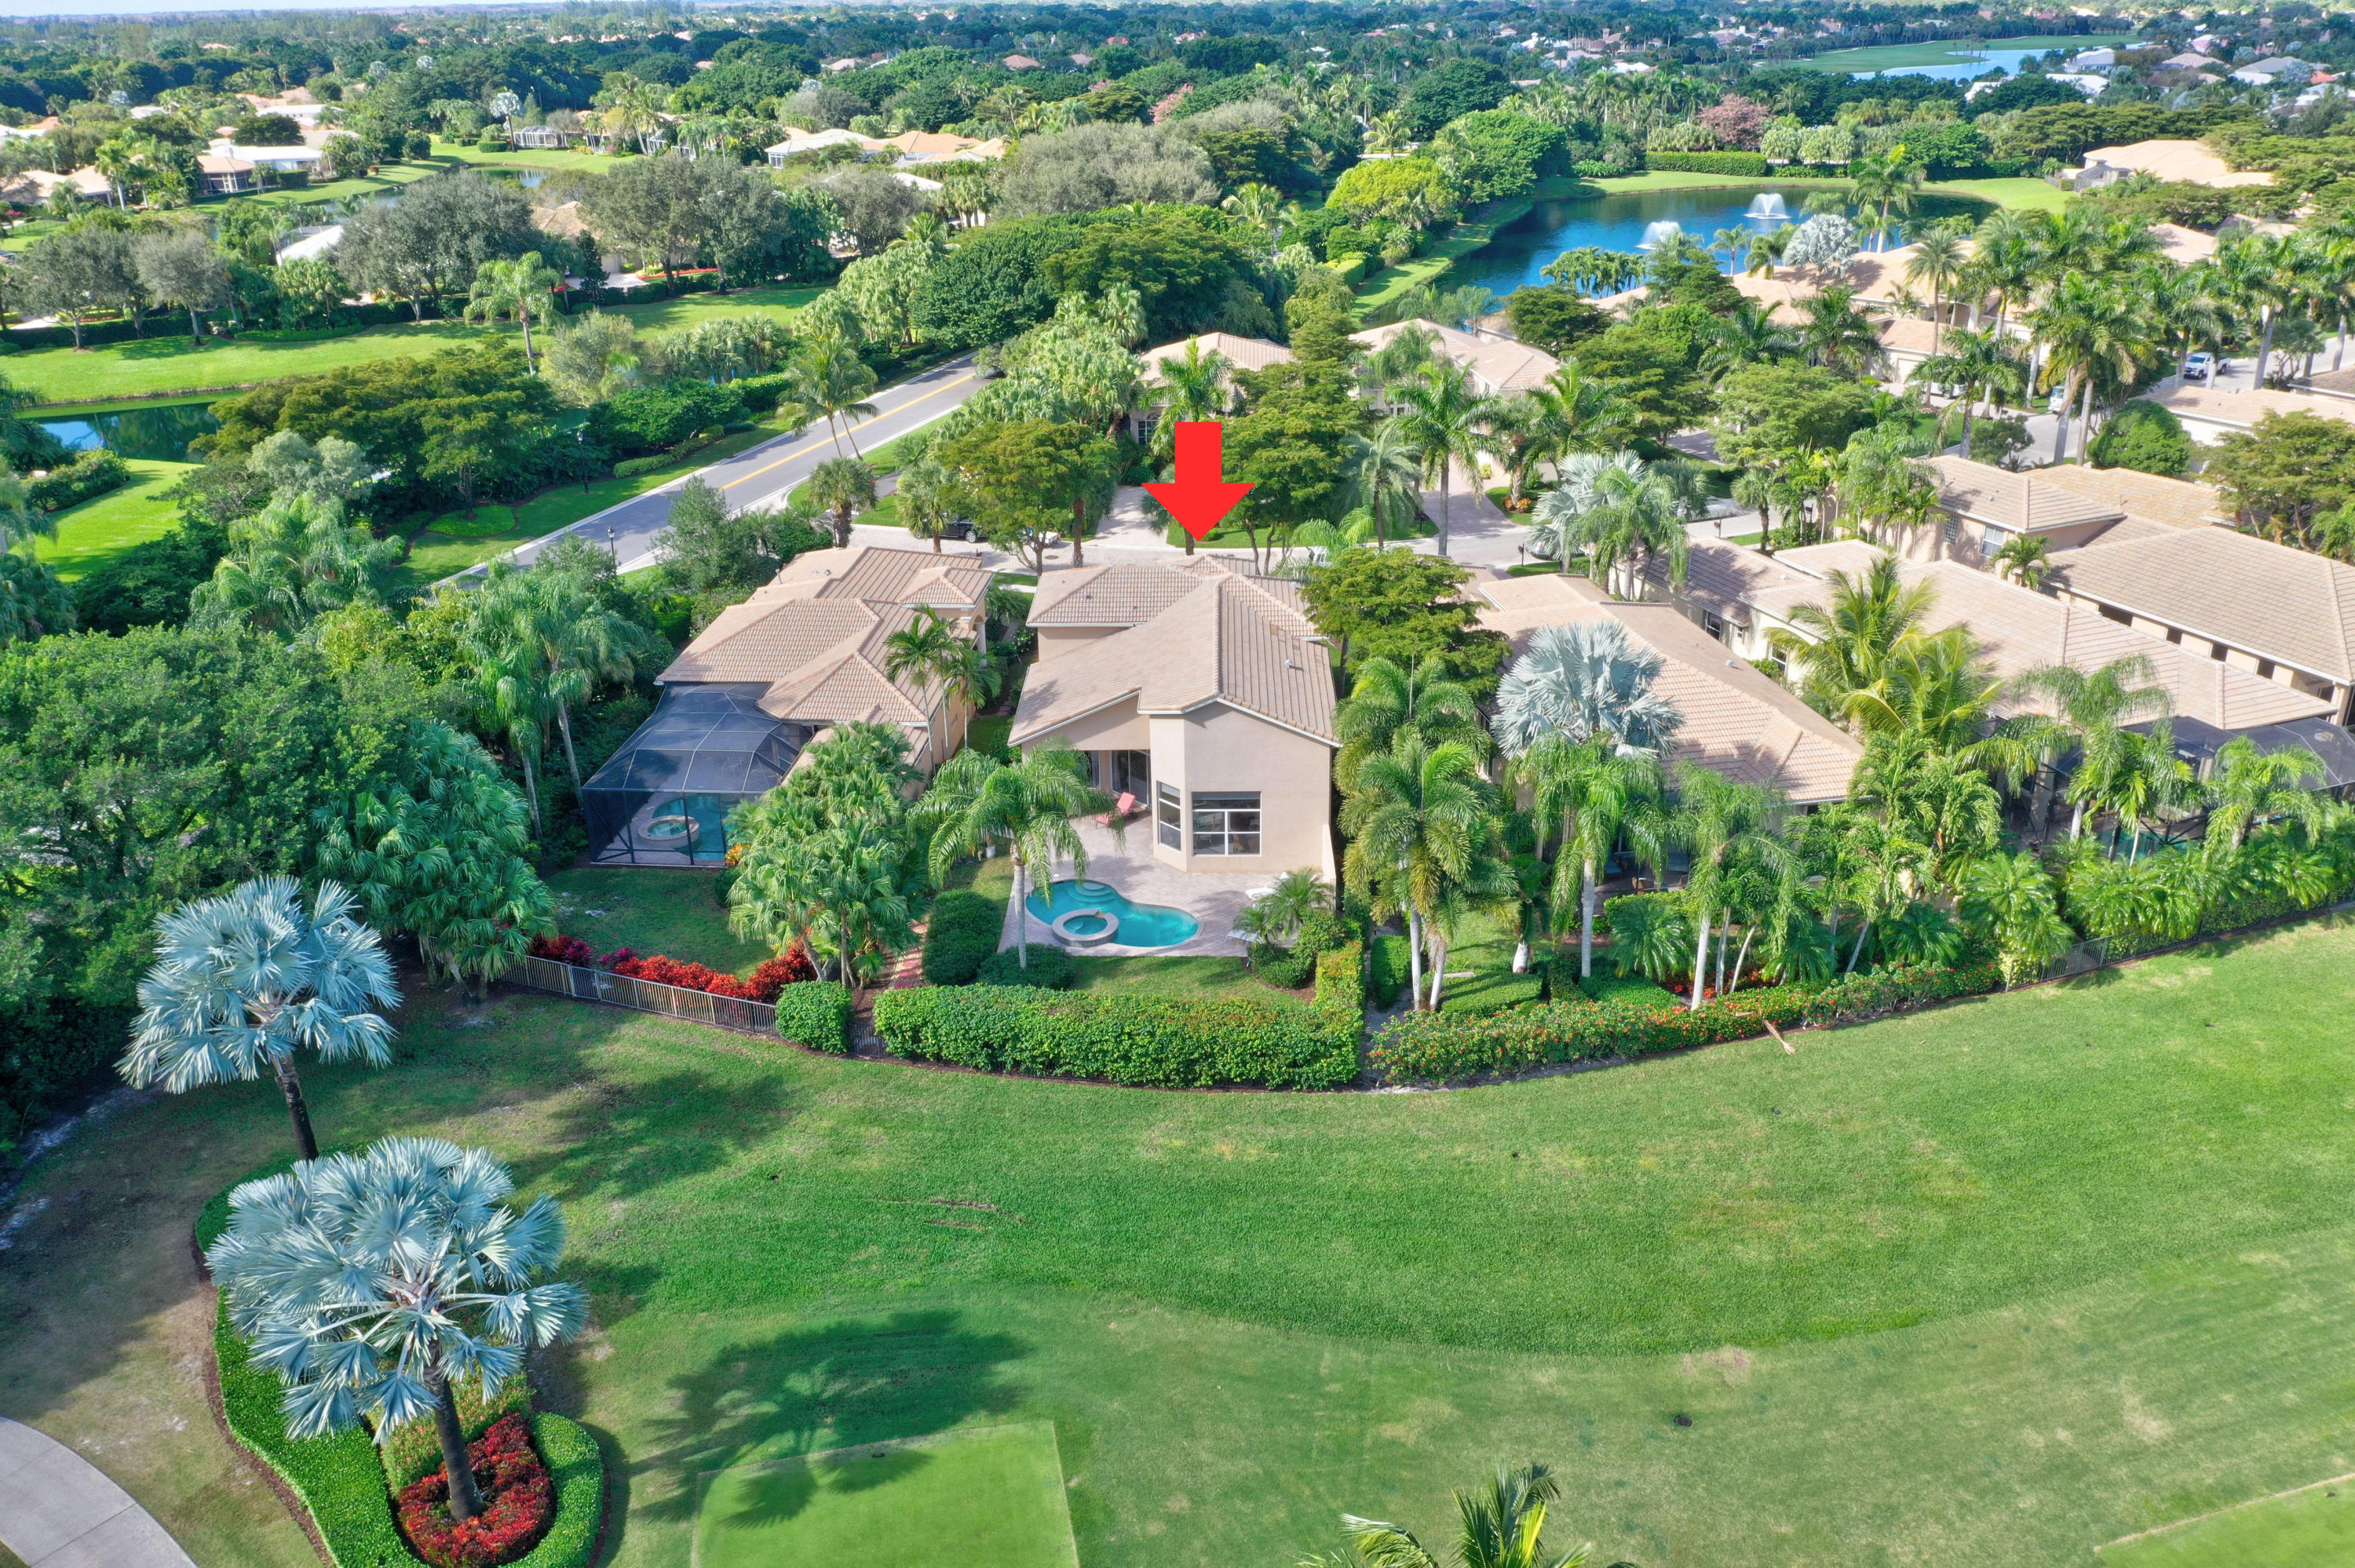 165 Orchid Cay Drive, Palm Beach Gardens, Florida 33418, 4 Bedrooms Bedrooms, ,3.1 BathroomsBathrooms,A,Single family,Orchid Cay,RX-10589112